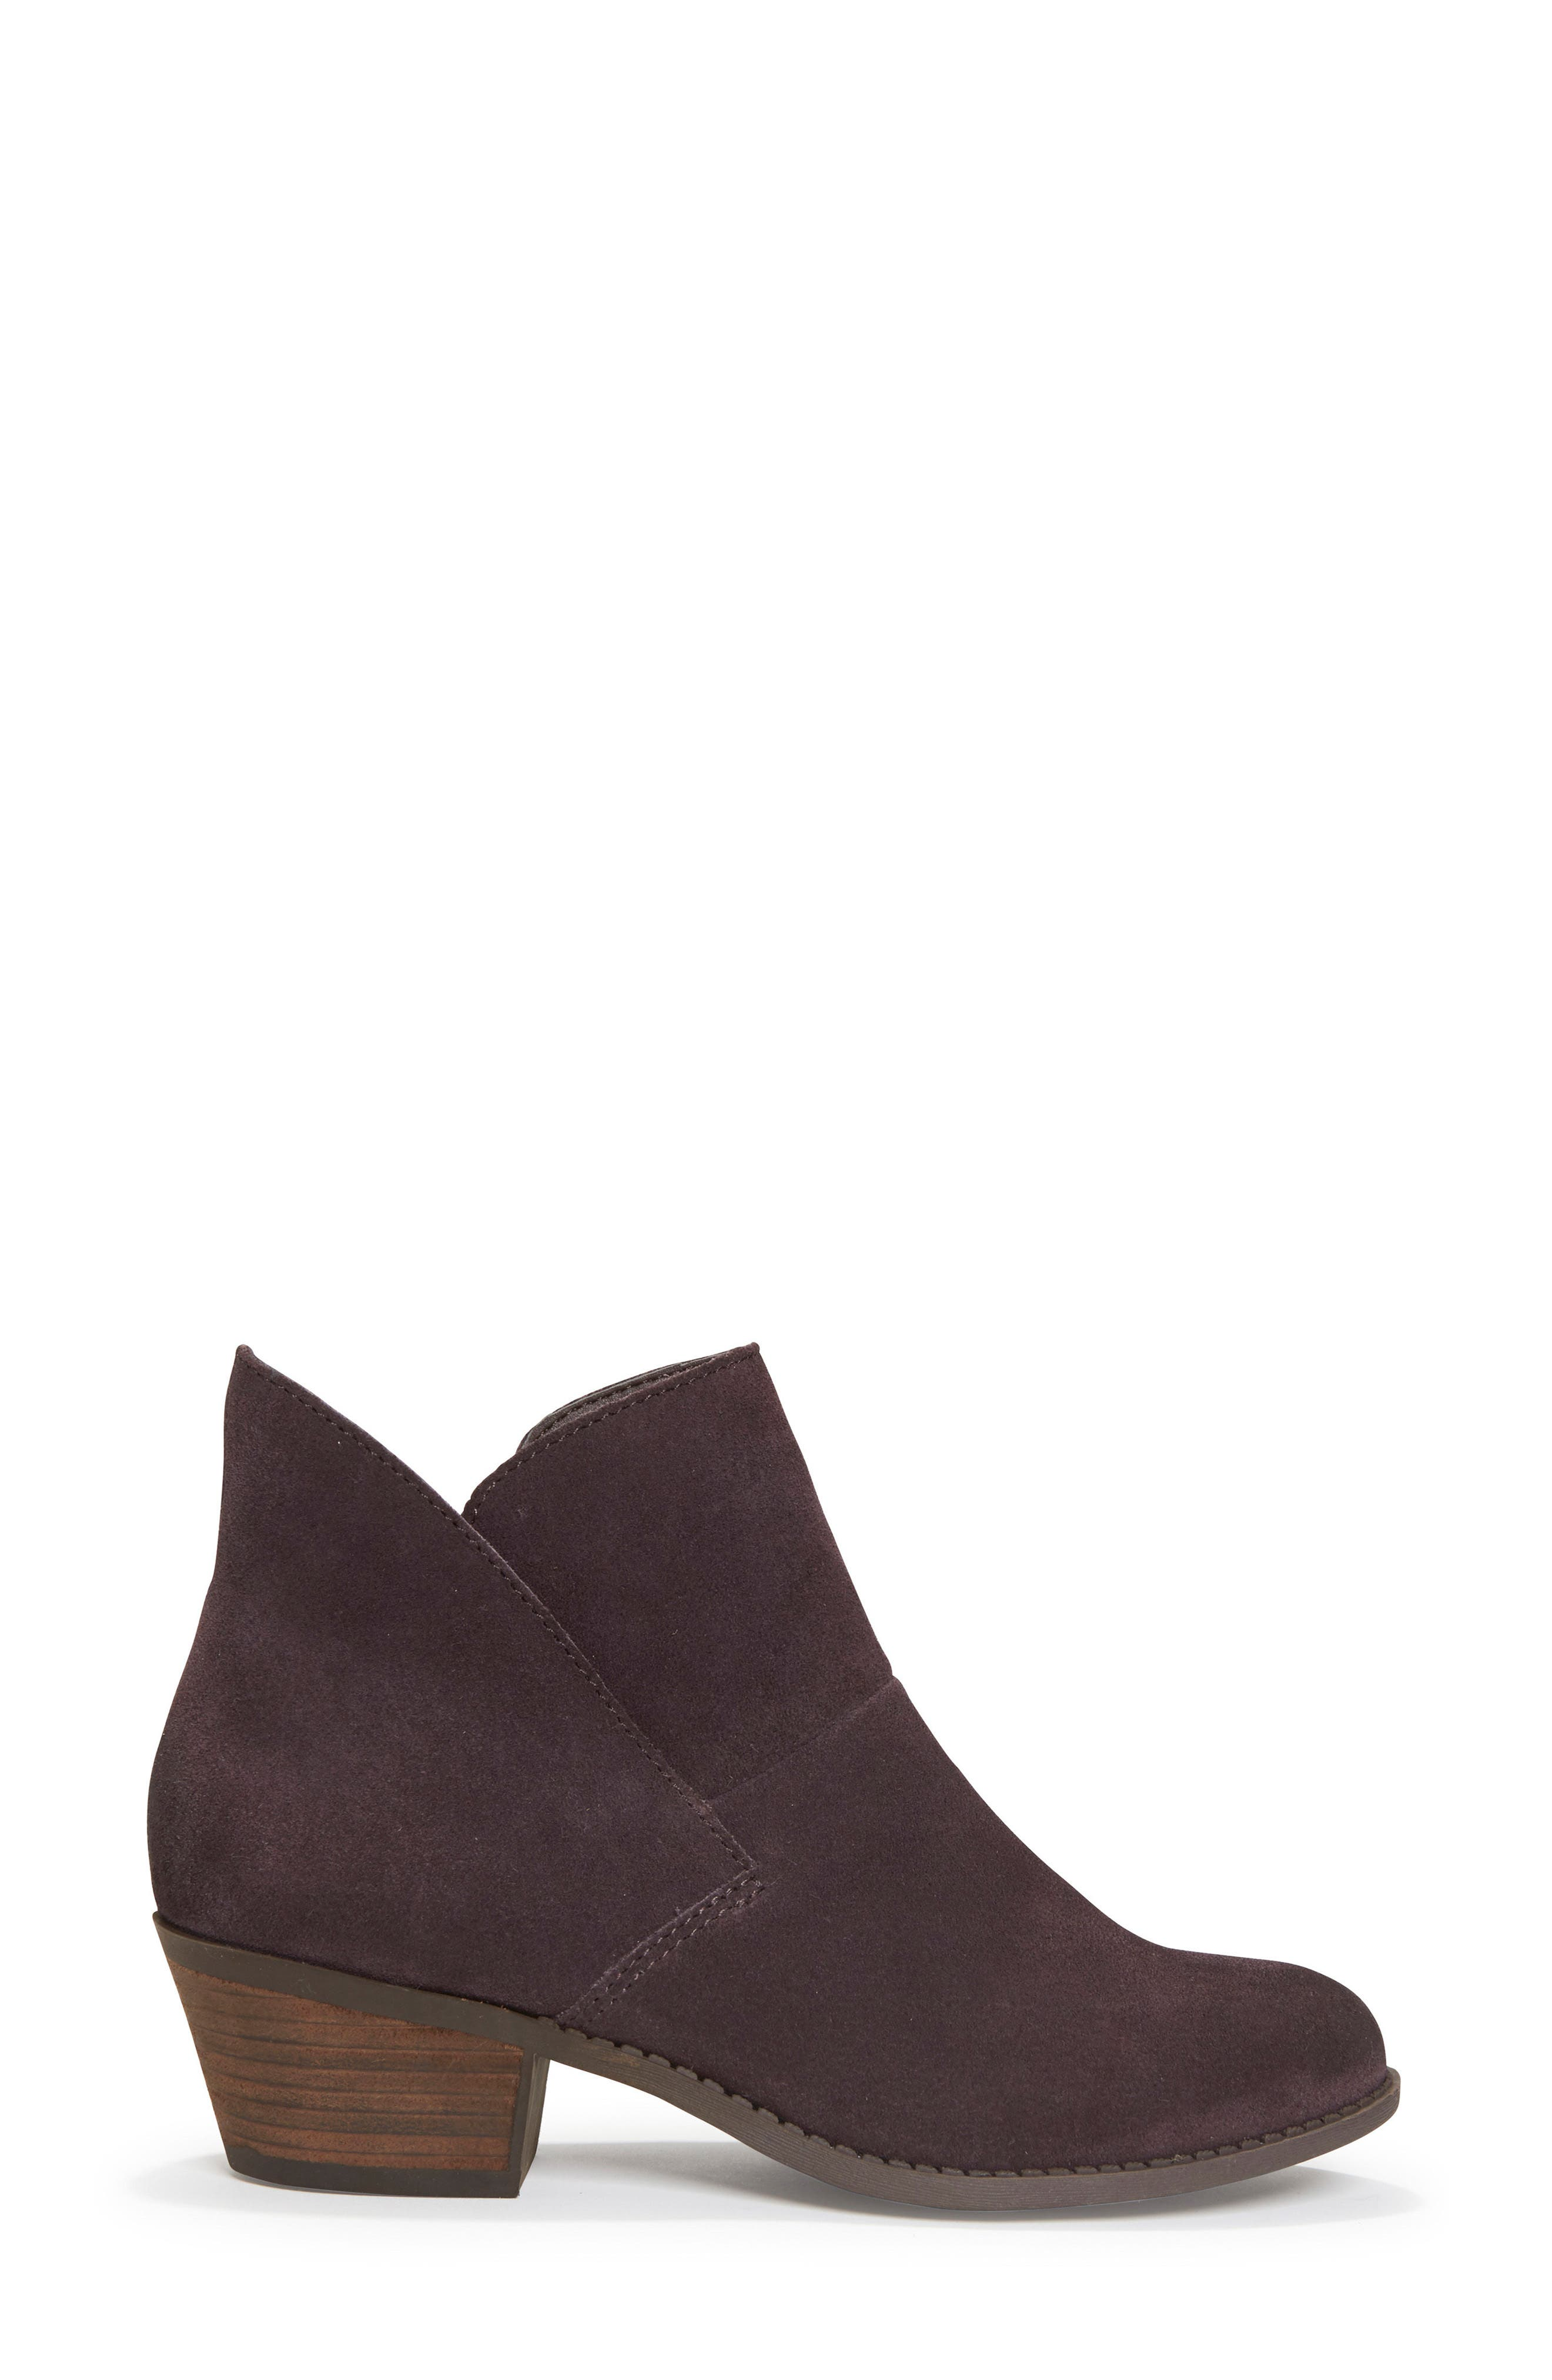 Zena Ankle Boot,                             Alternate thumbnail 3, color,                             Dark Ruby Suede